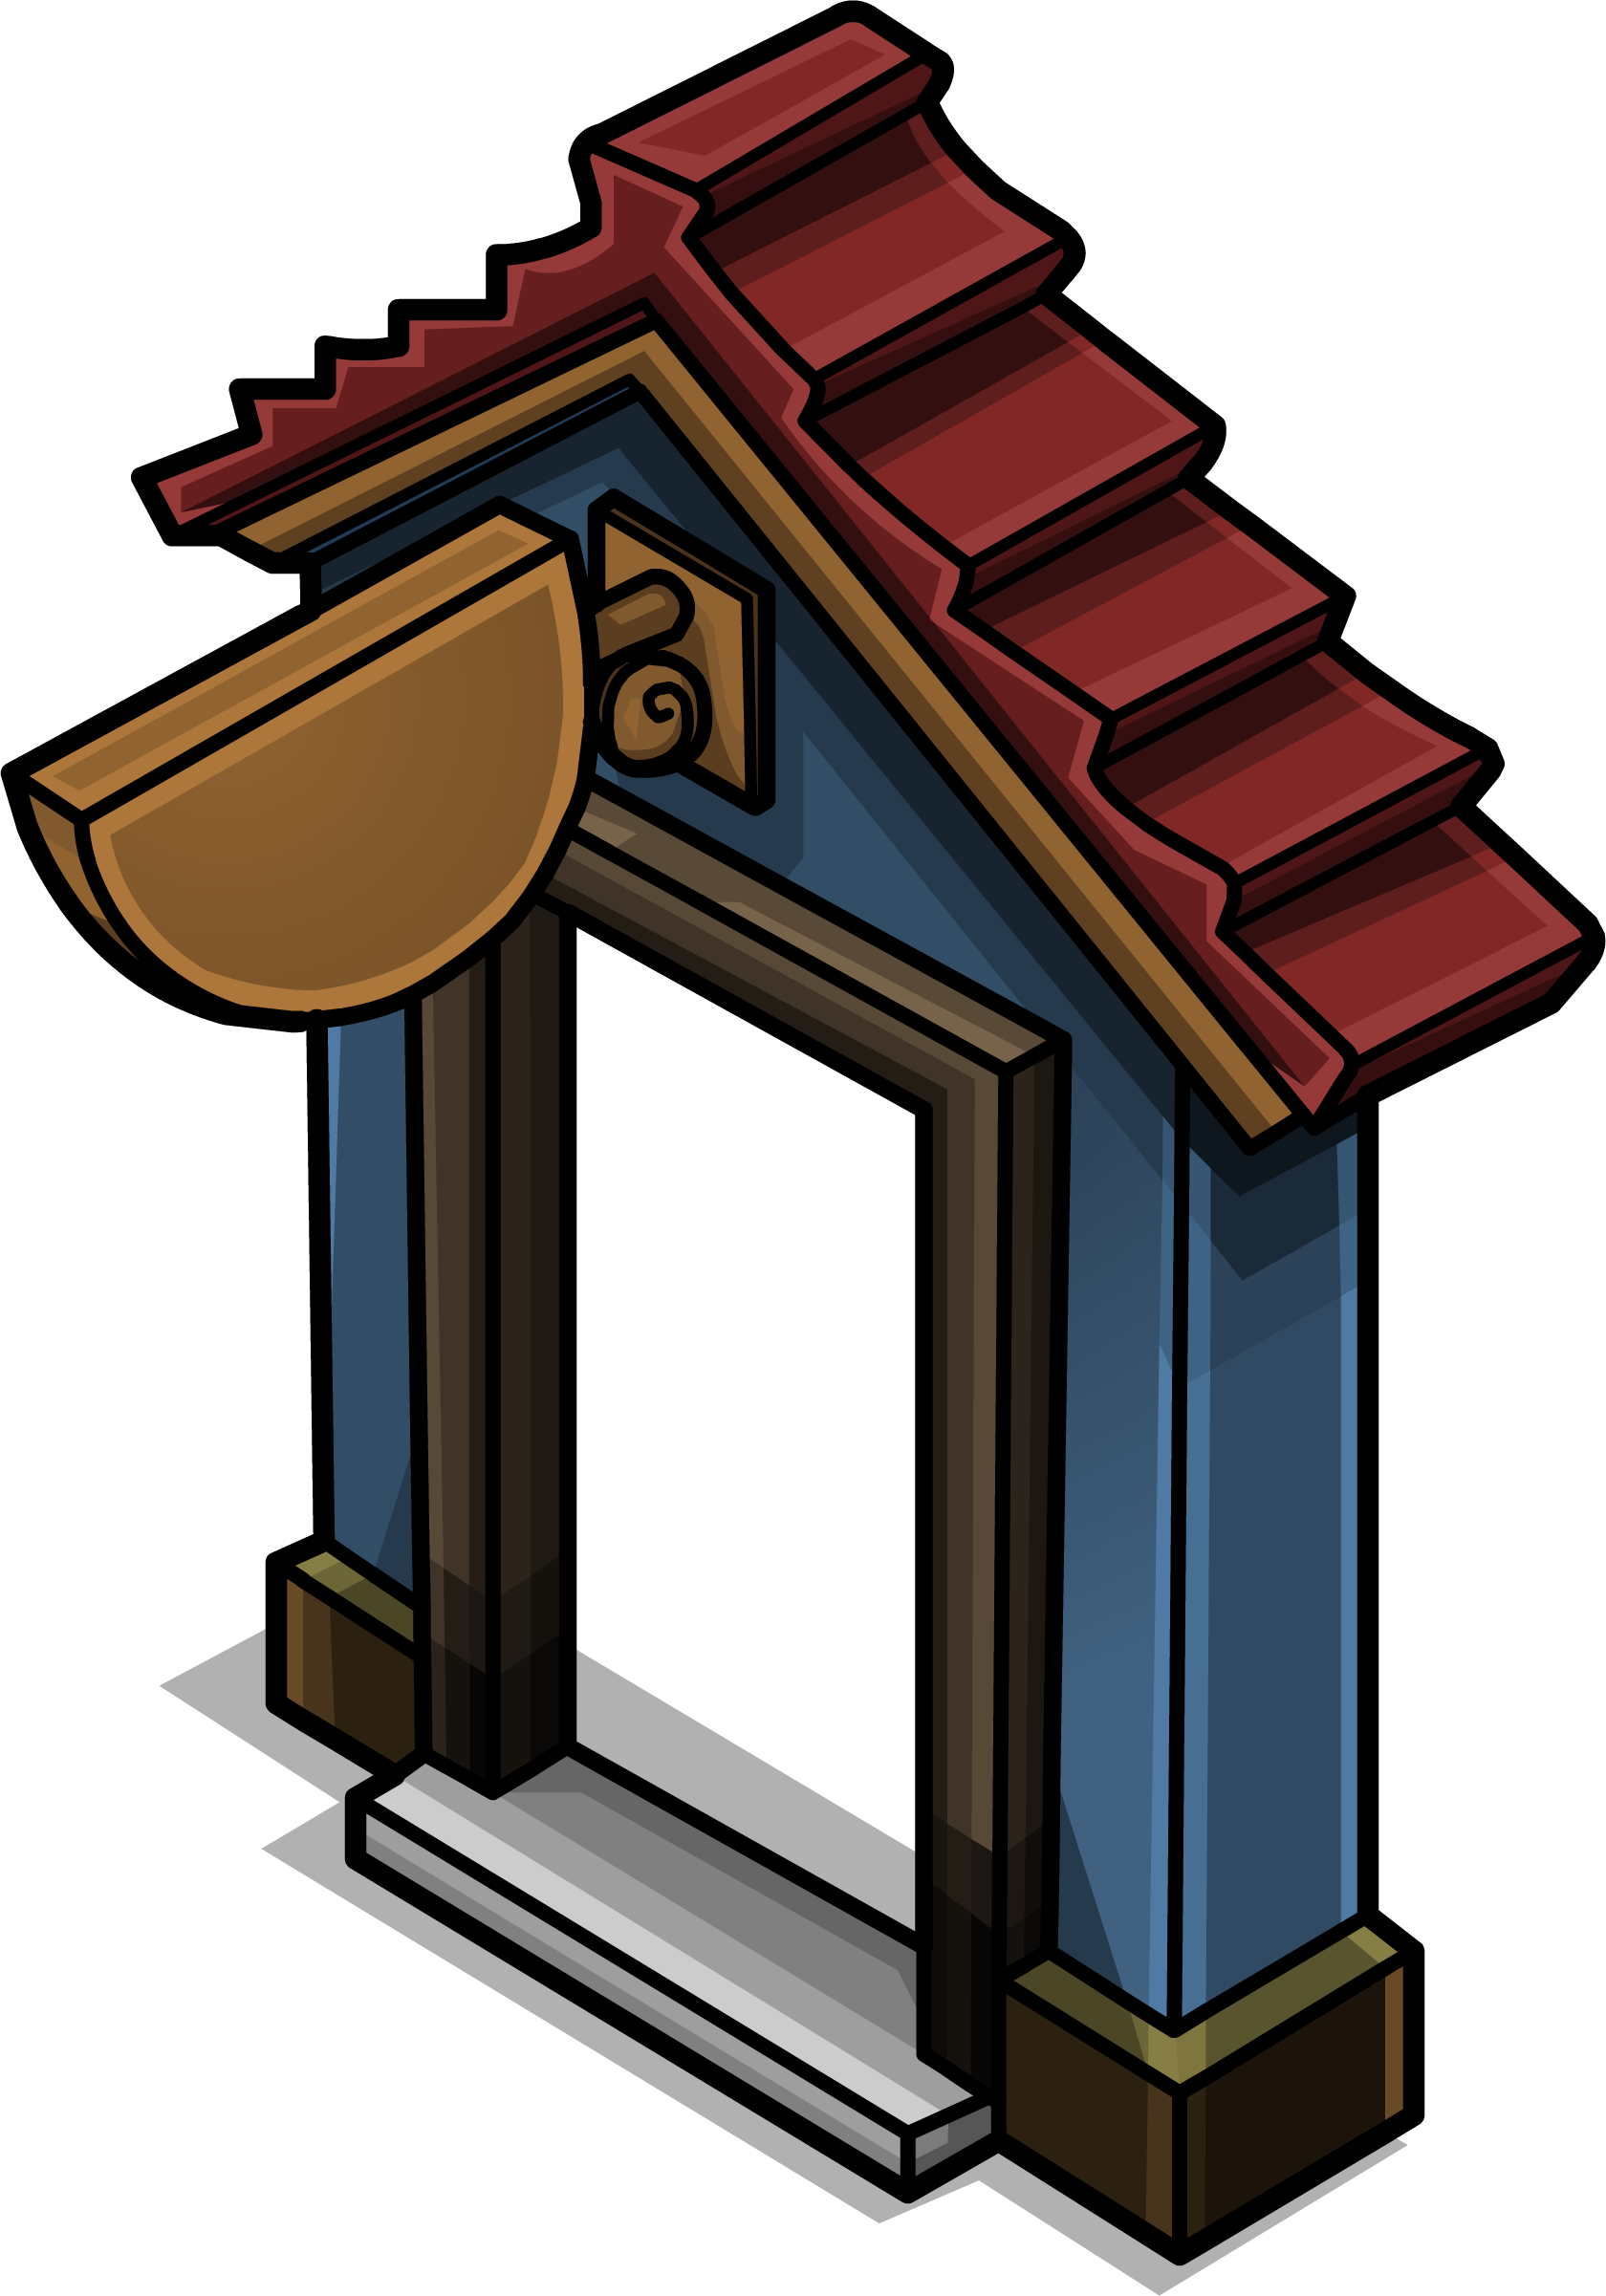 Cozy Blue Door sprite 002.png  sc 1 st  Club Penguin Wiki - Fandom & Image - Cozy Blue Door sprite 002.png | Club Penguin Wiki | FANDOM ...